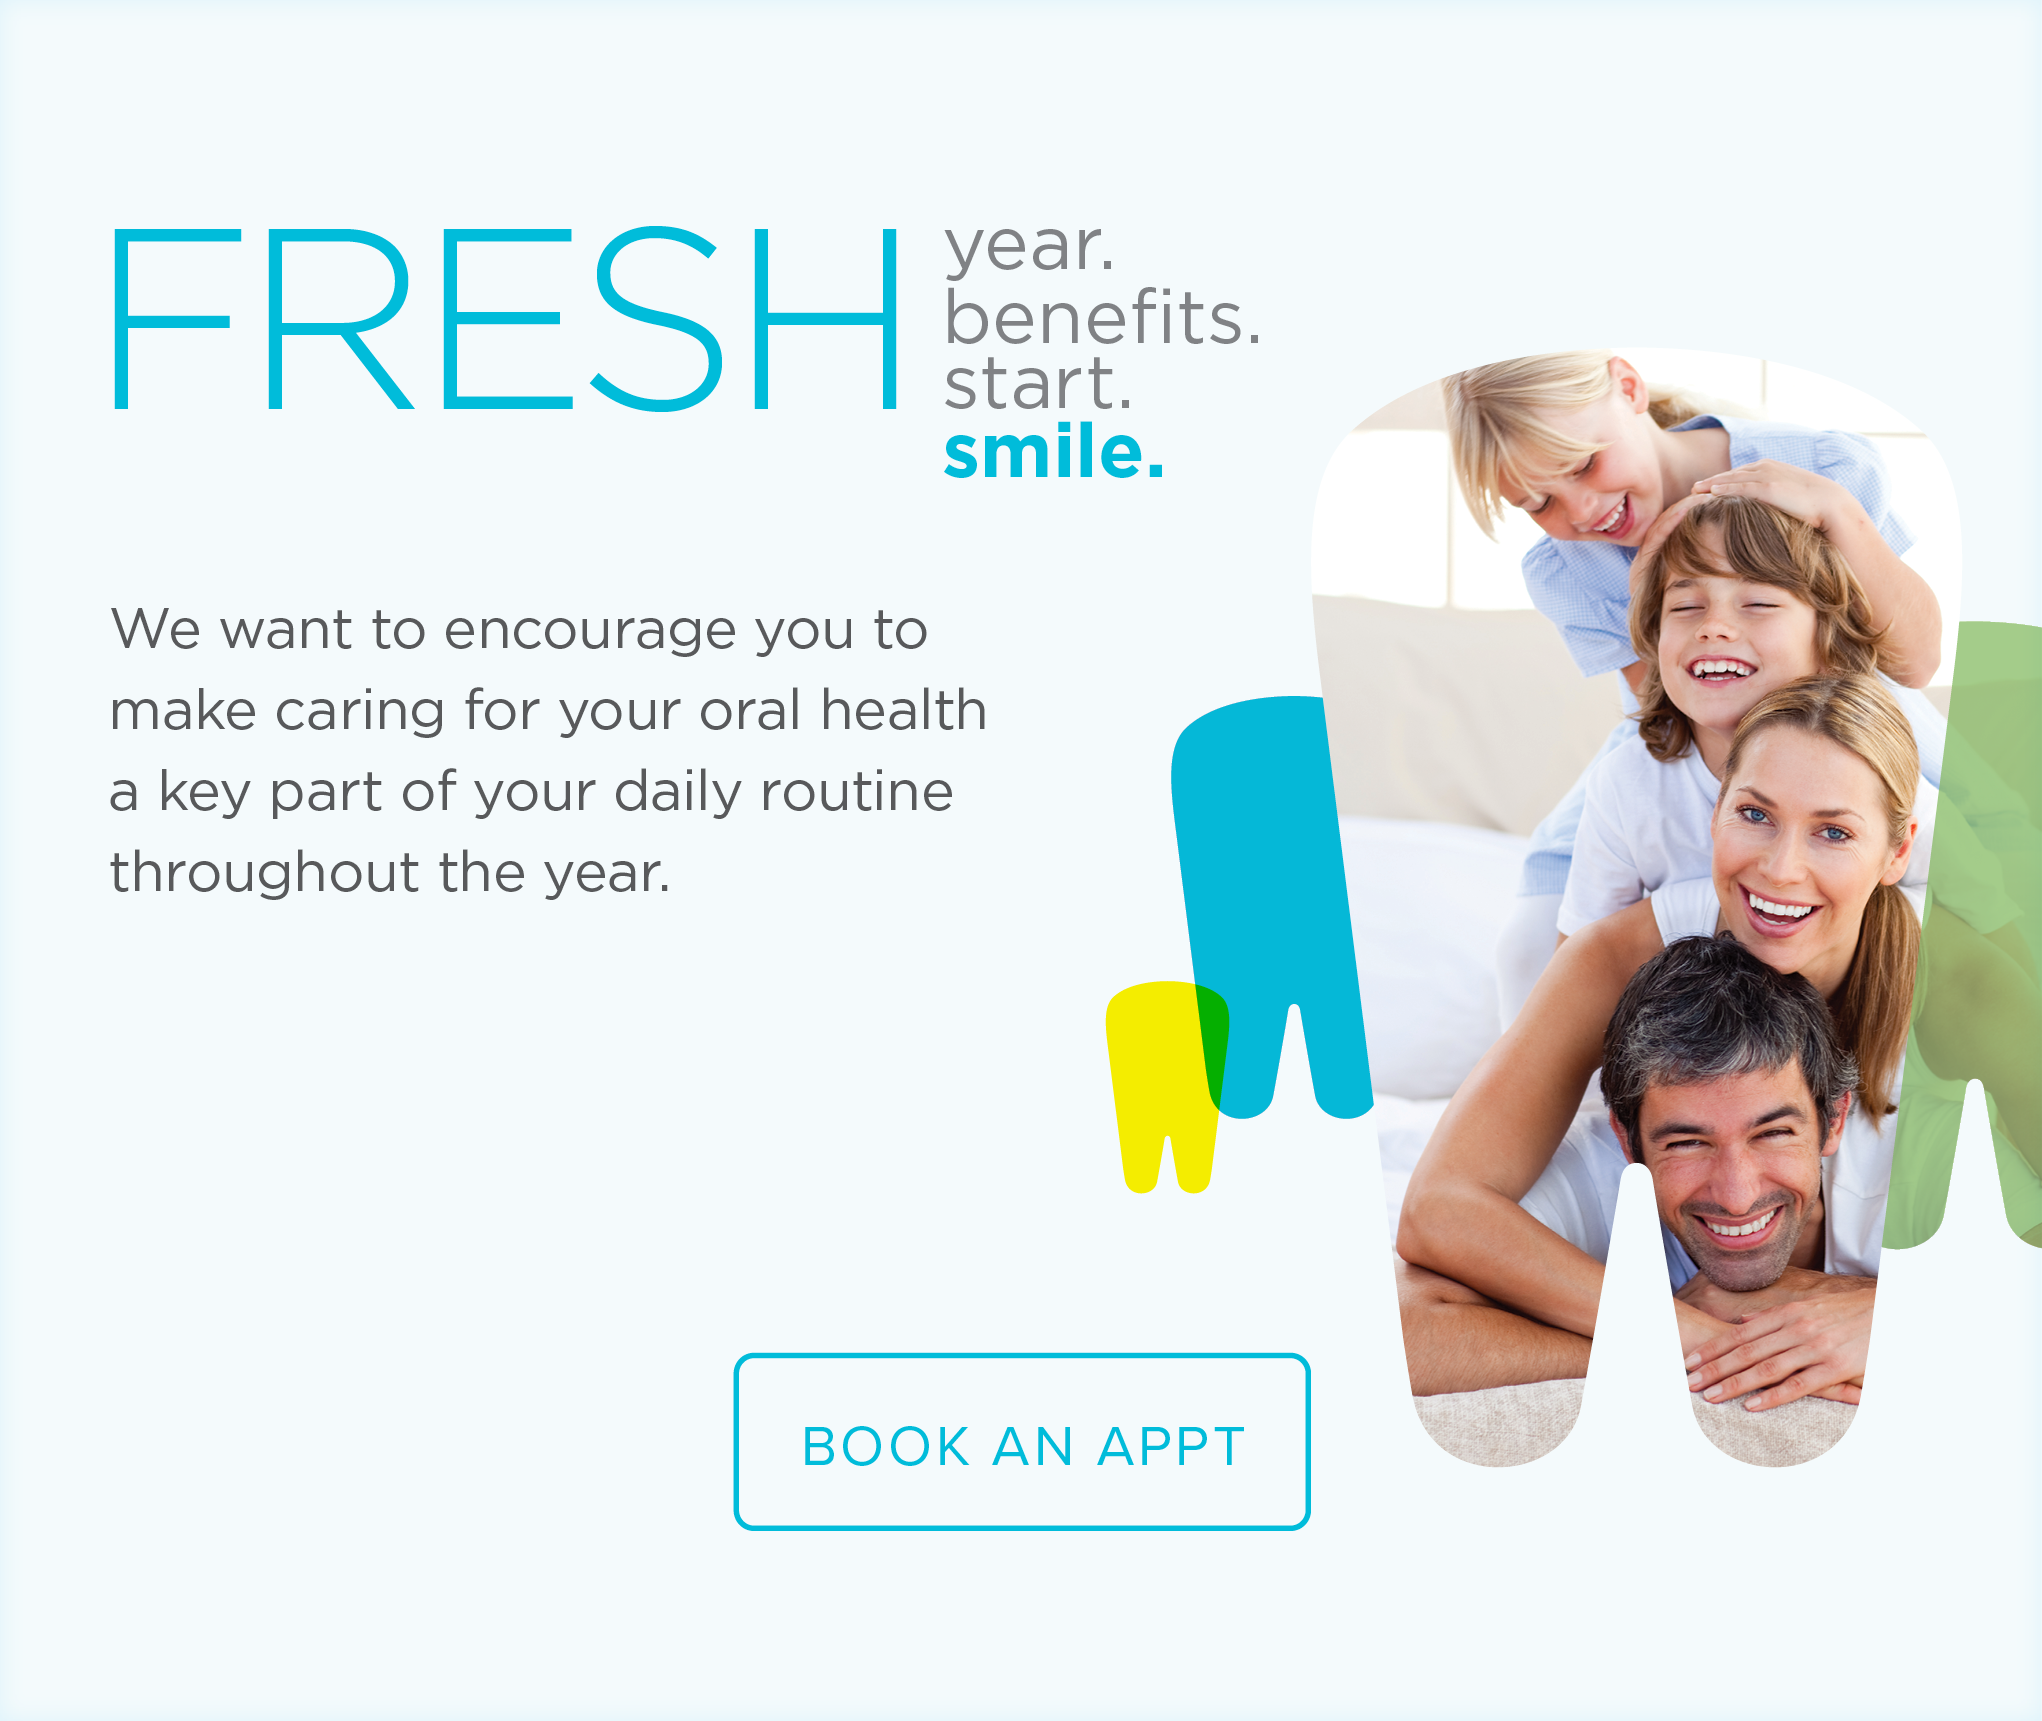 Crabapple Smiles Dental Group - Make the Most of Your Benefits